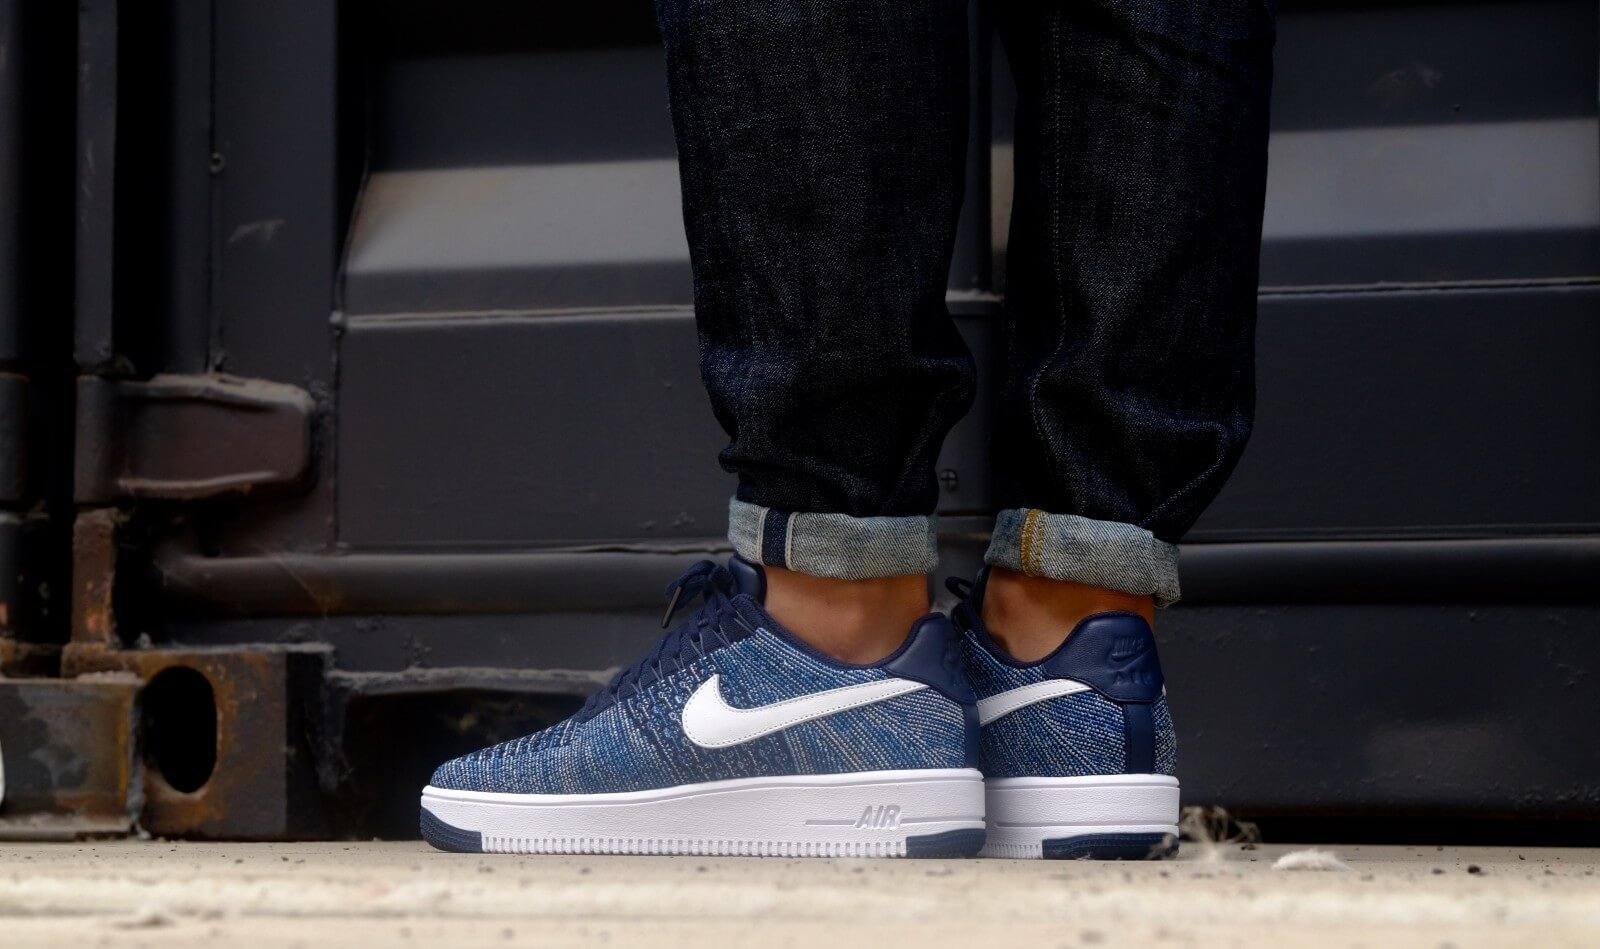 Nike Air Force 1 Ultra Flyknit Low Obsidian White Star Pure Platinum 817419 400